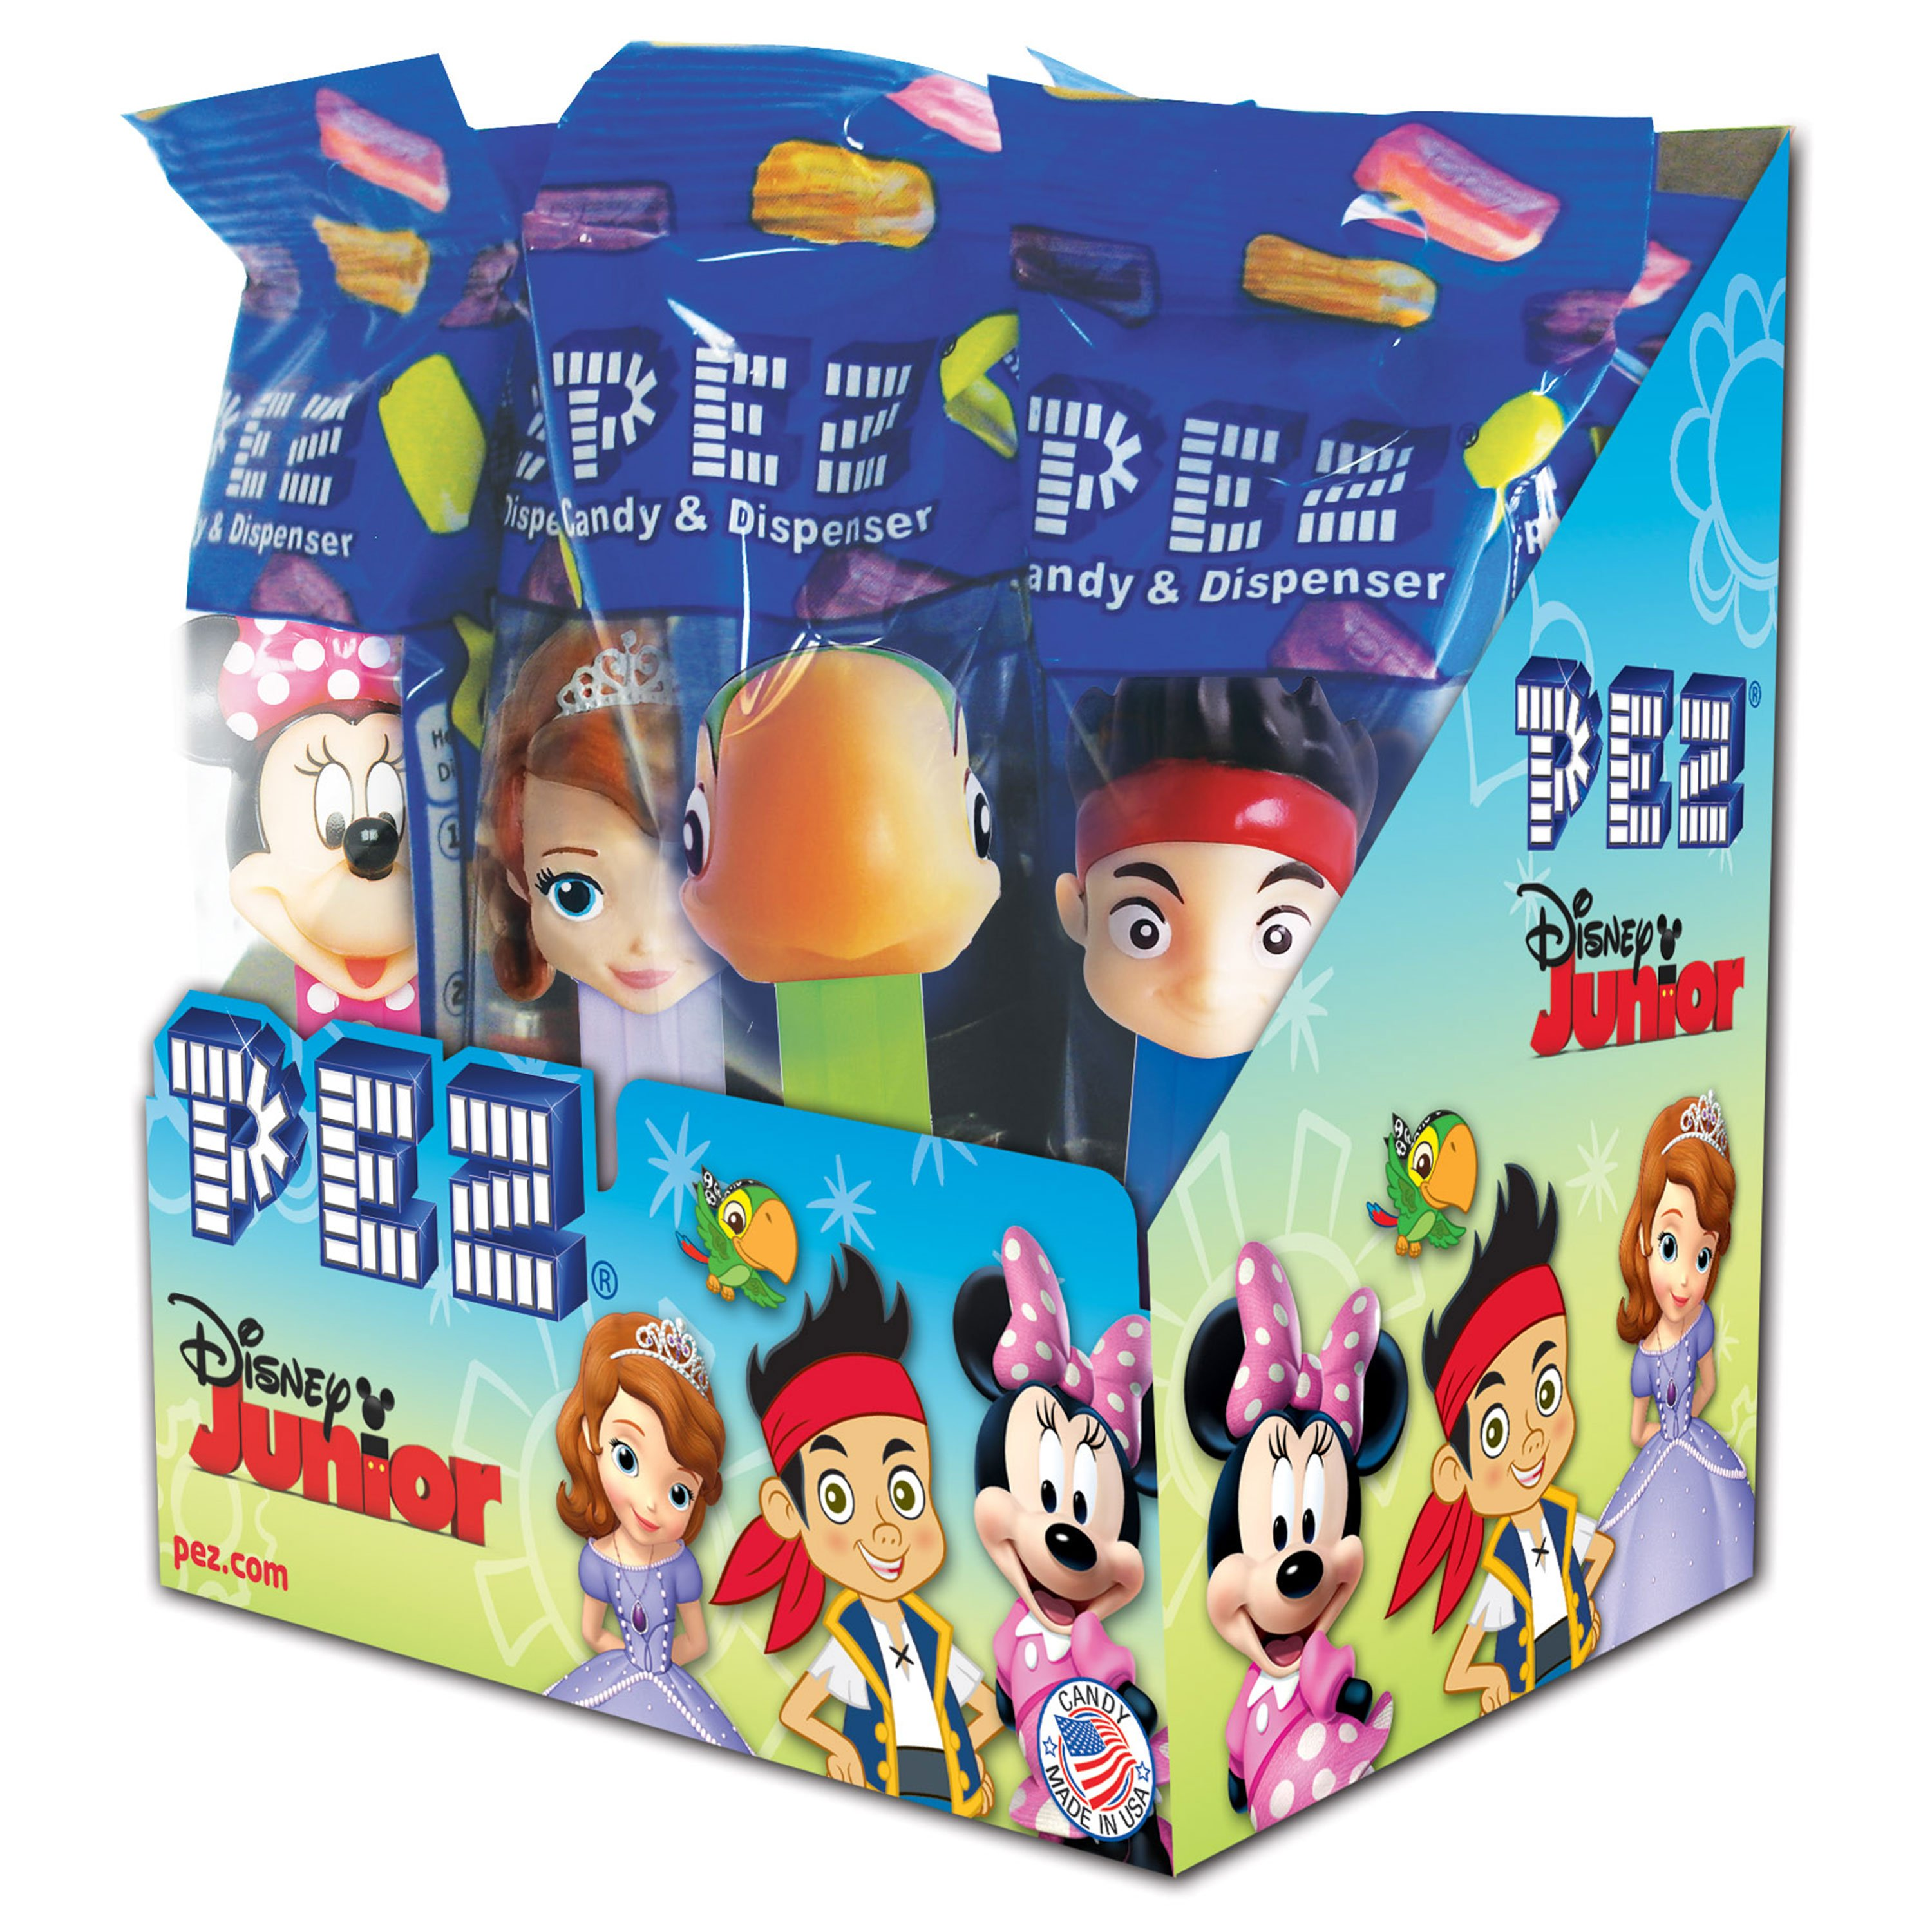 PEZ Candy Disney Jr. Assortment, candy dispenser plus 2 rolls of assorted fruit candy, box of 12